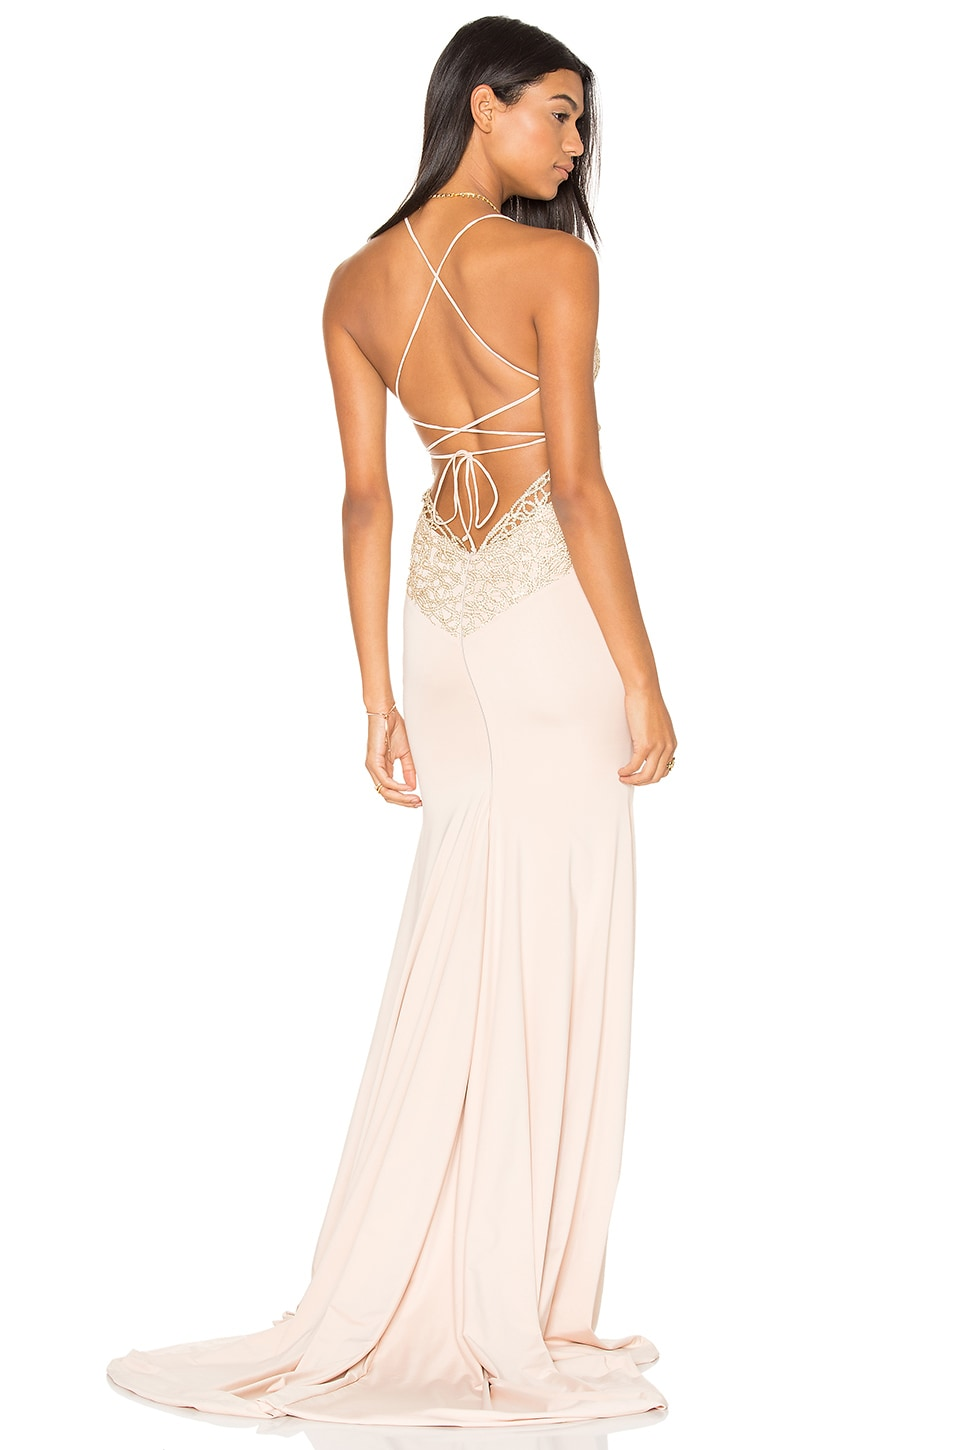 Gemeli Power Jay & Co Gown in Gold Blossom